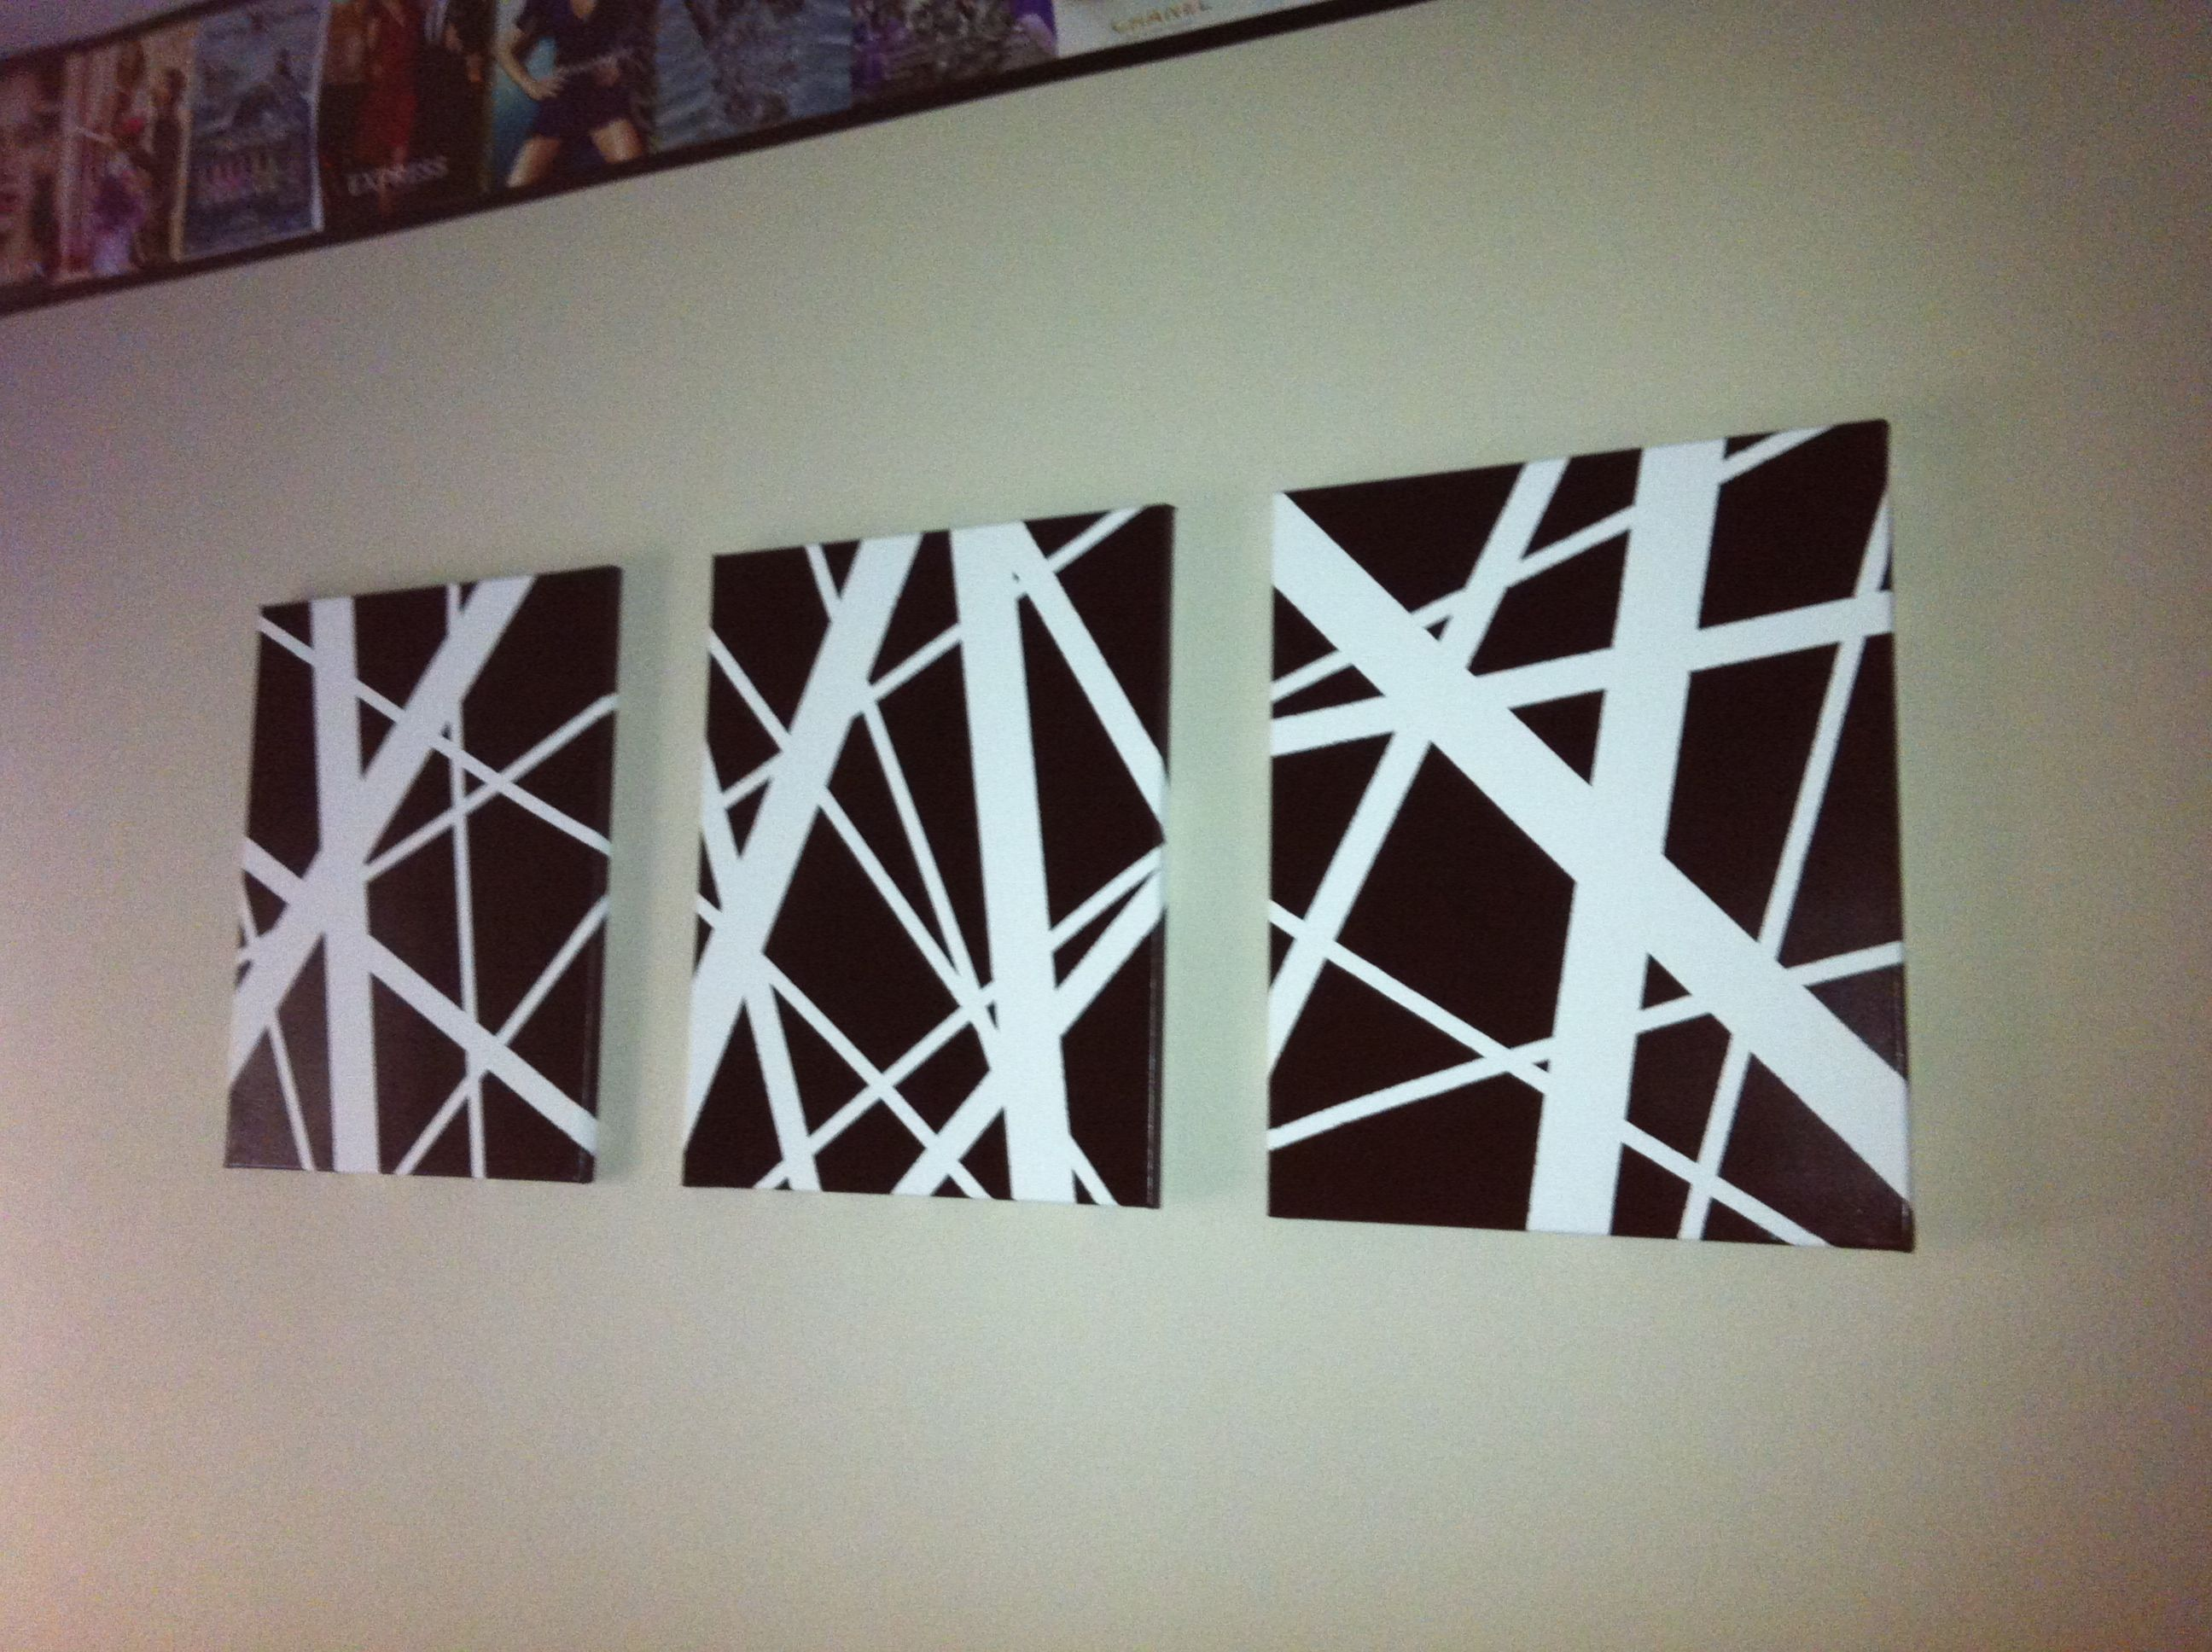 Easy Diy Abstract Art 3 Different Sized Tape Over White Canvas Then Spray Paint Color Of Your Choice To Pre Diy Canvas Wall Art Abstract Art Diy Diy Canvas